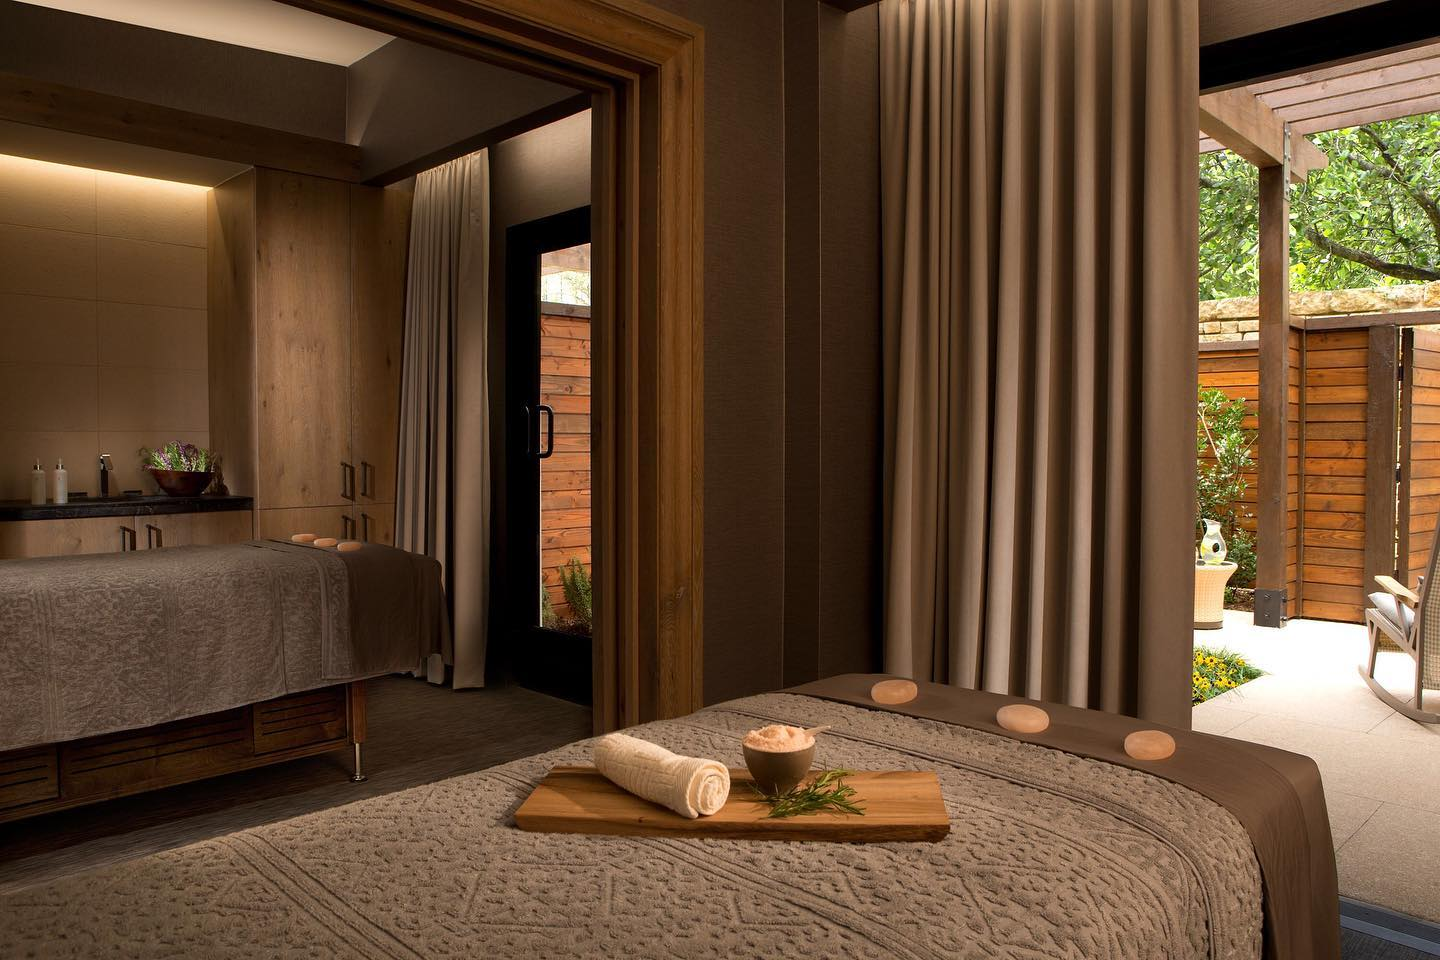 Massage tables with stones in room